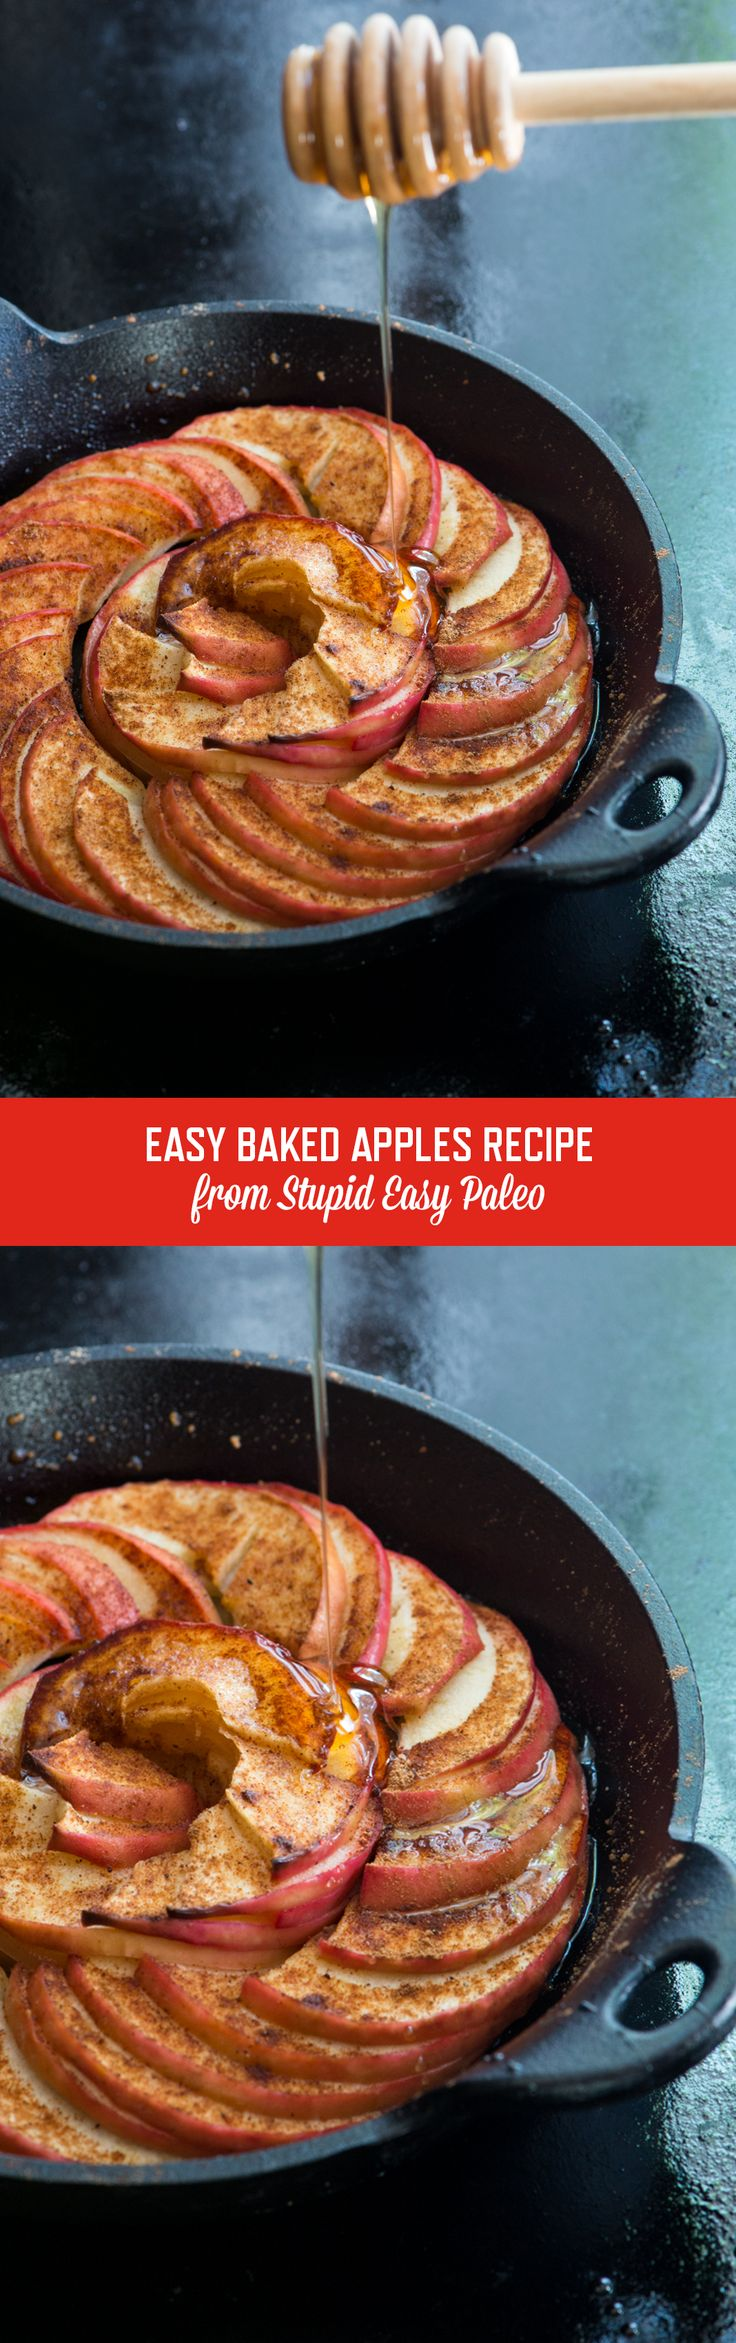 Easy Baked Apples Recipe is the perfect combination of simple and flavorful paleo fall ingredients...plus, there's no crust to fuss over! | StupidEasyPaleo.com